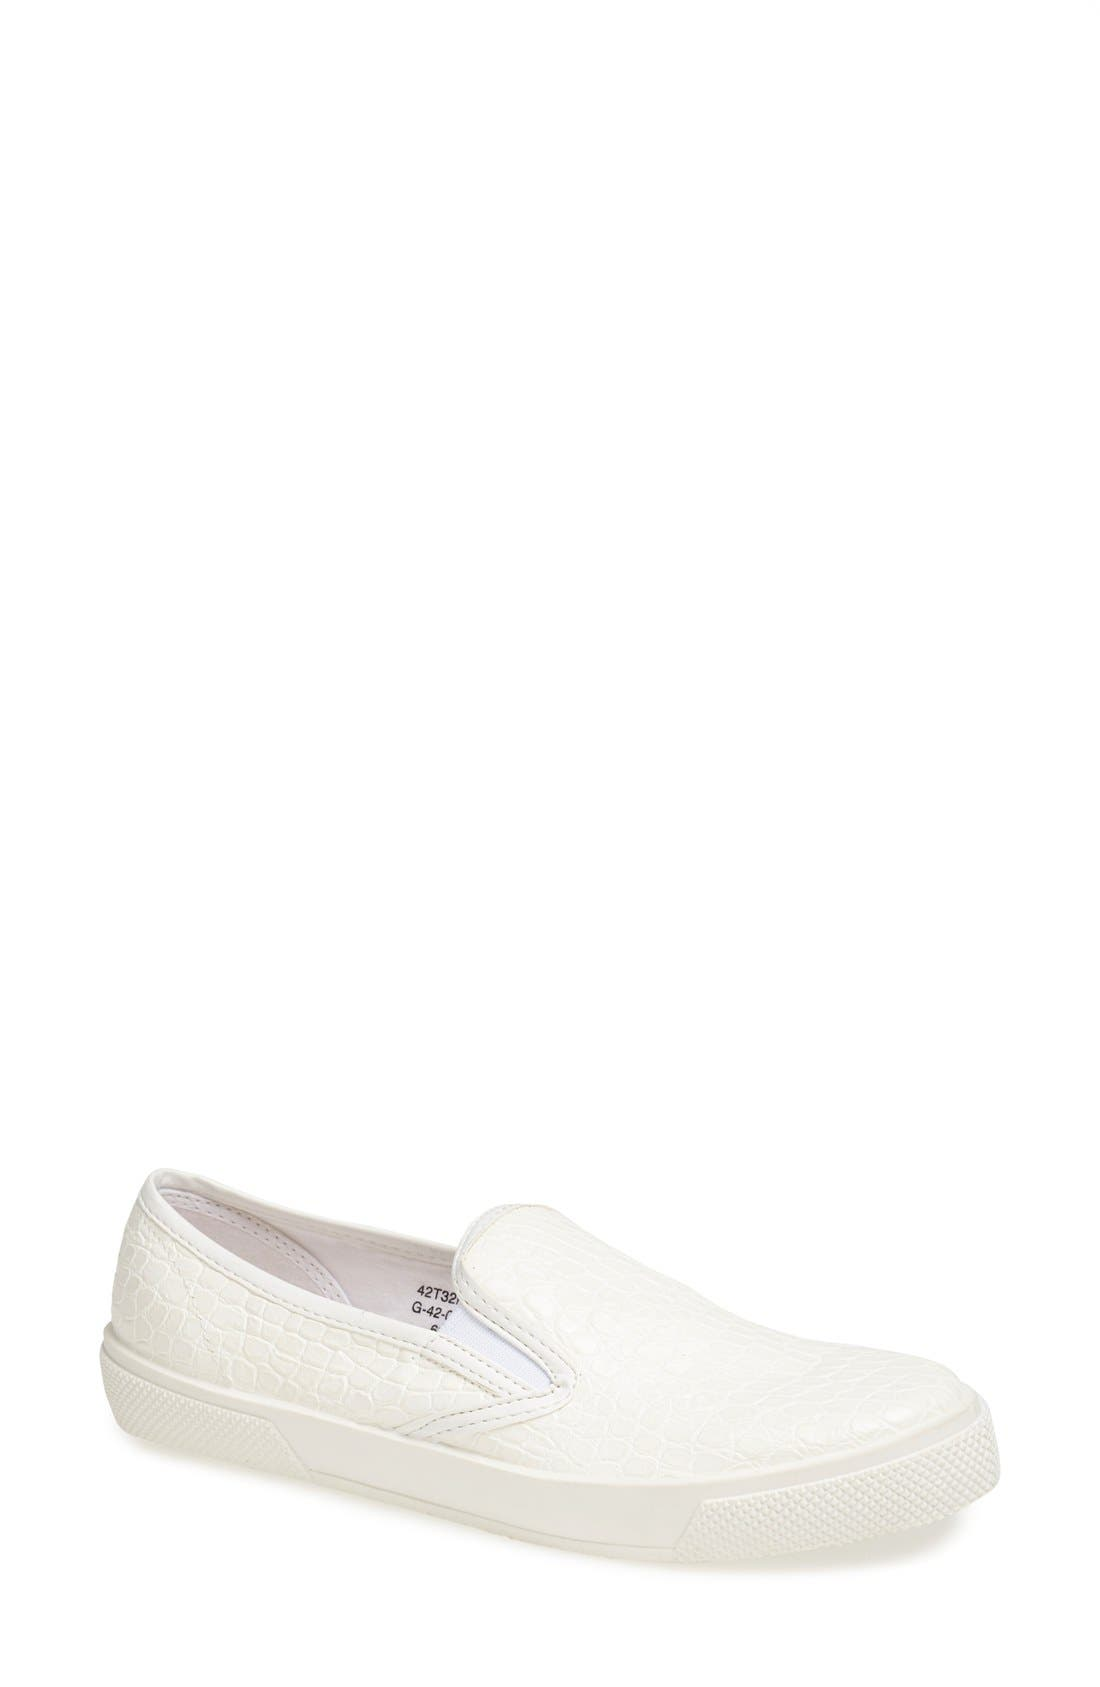 Main Image - Topshop 'Tika2' Croc Embossed Slip-On